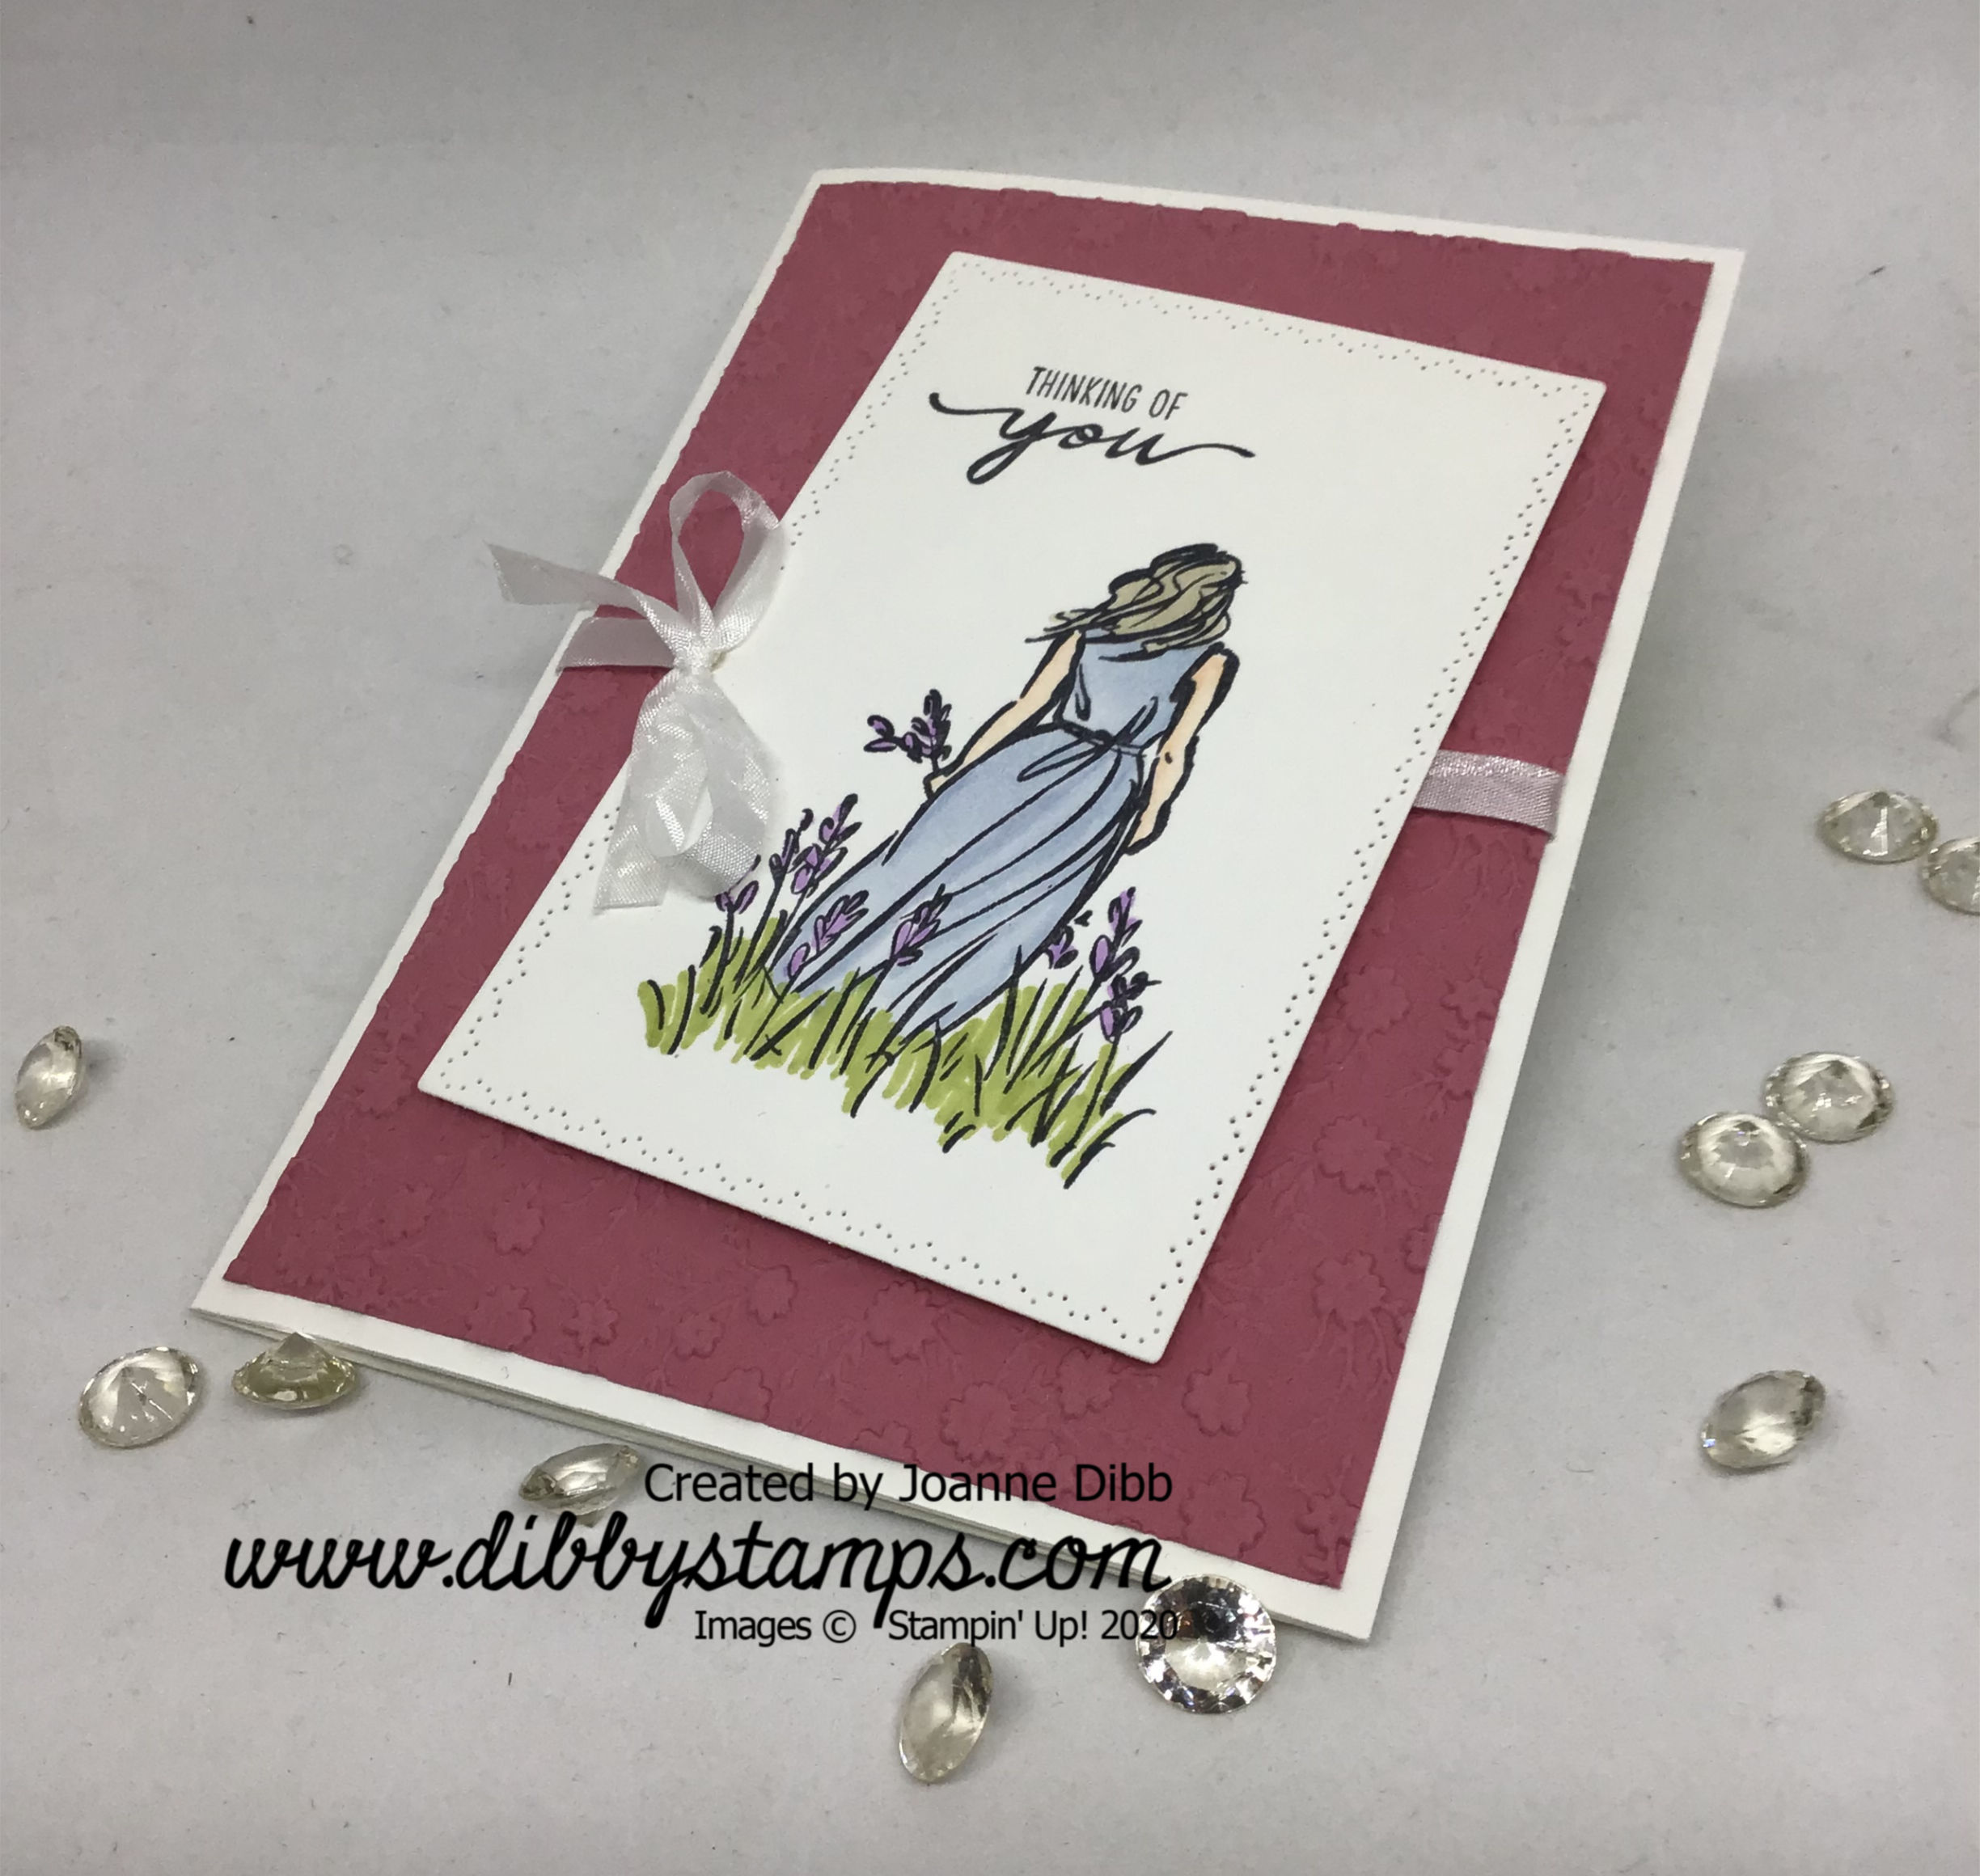 Thinking of You Card with Beautiful Moments - flat